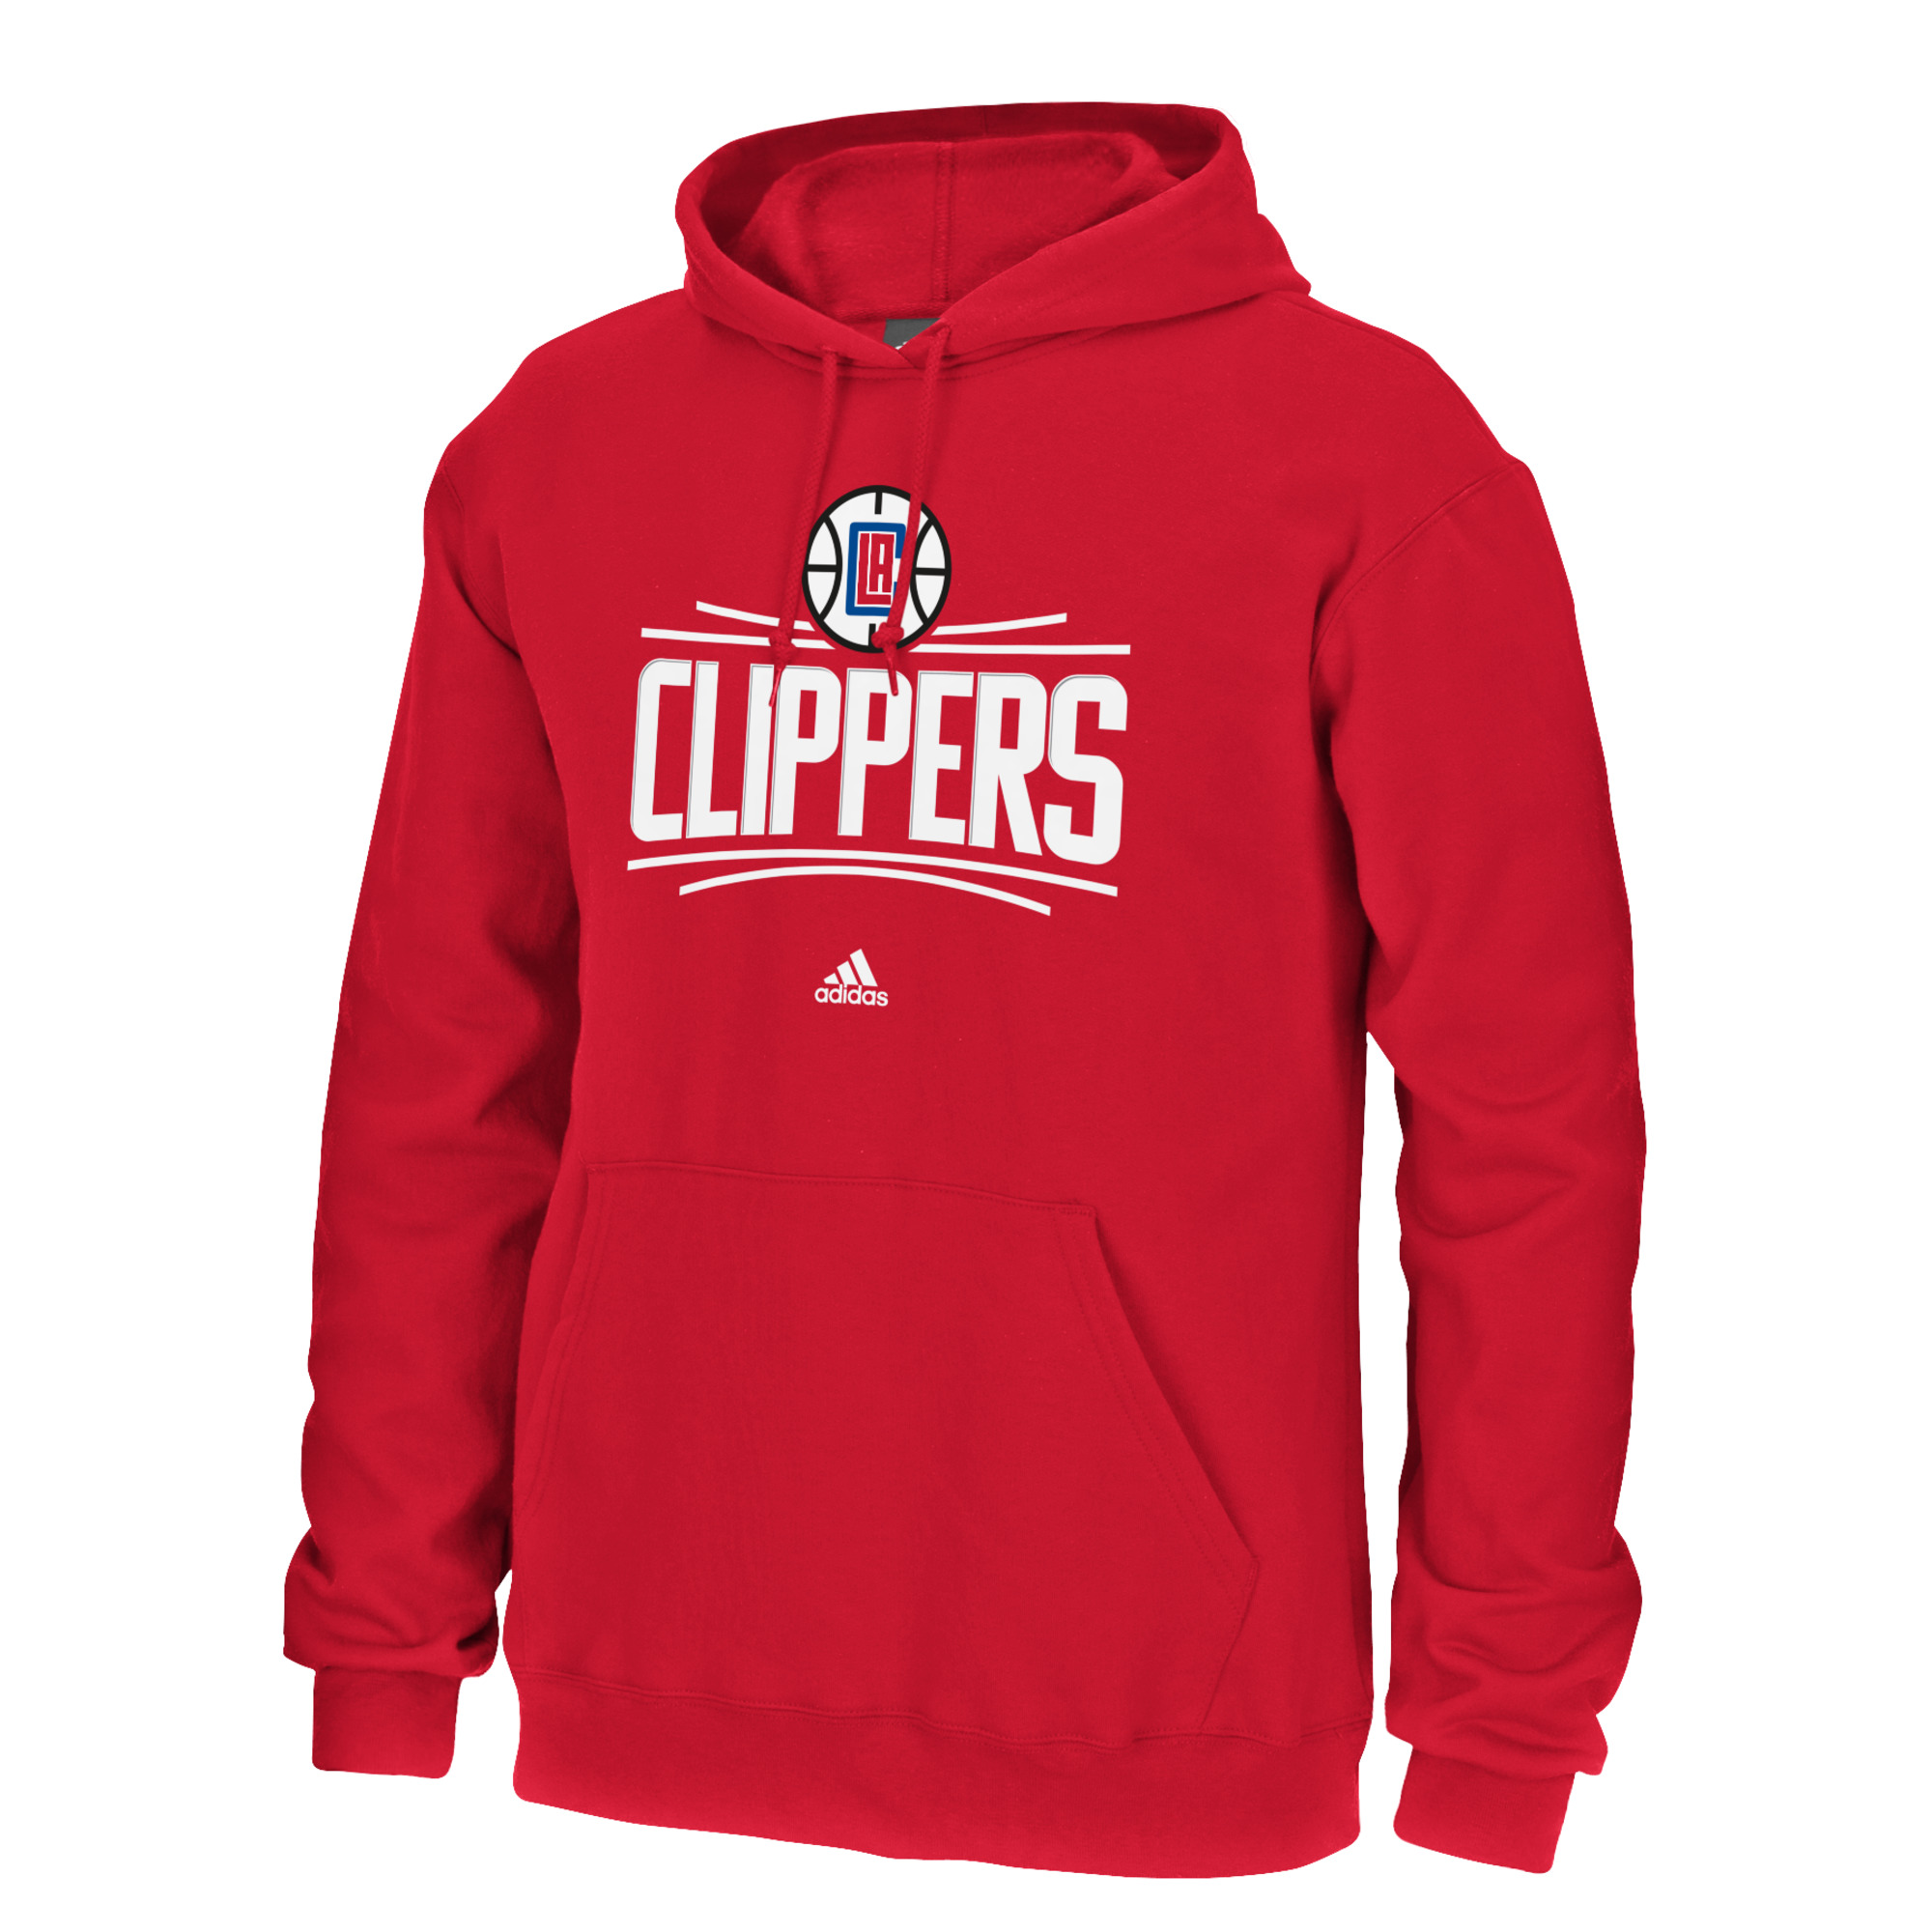 Los Angeles Clippers NBA  Hooded Sweatshirt - Red